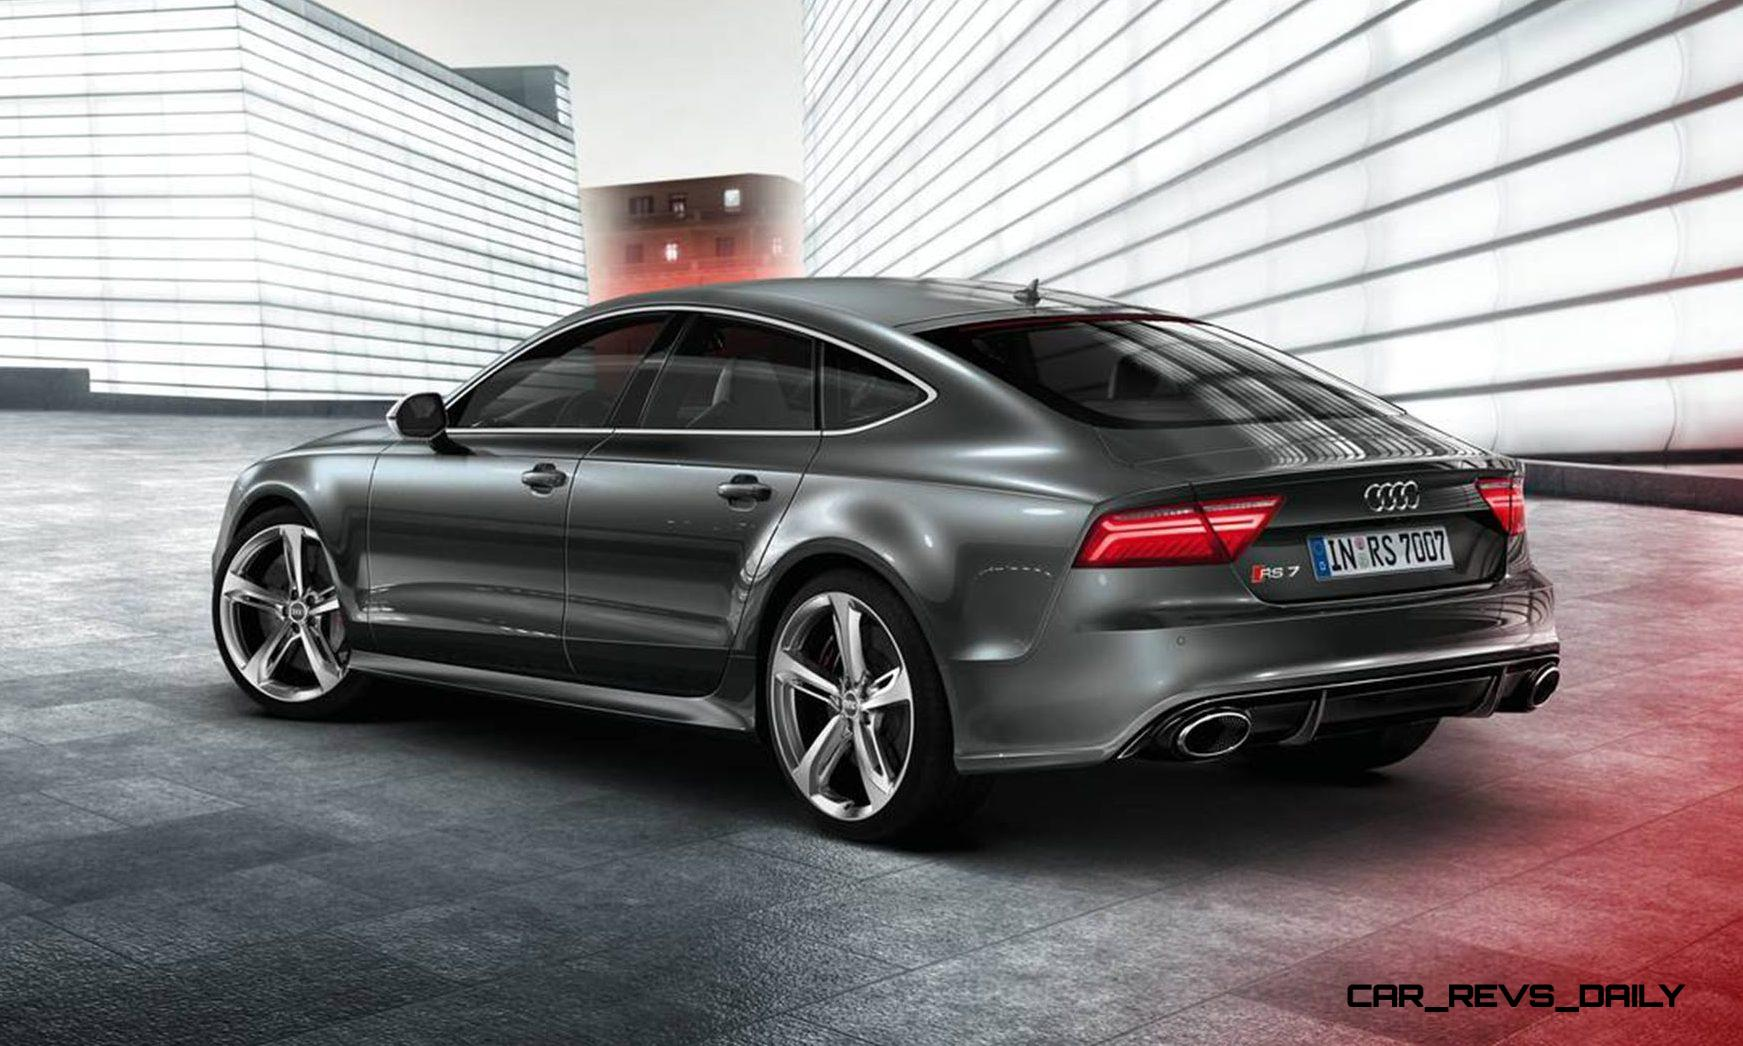 2016 Audi Rs7 Makes Moscow Debut With Updated Leds Extra Power And